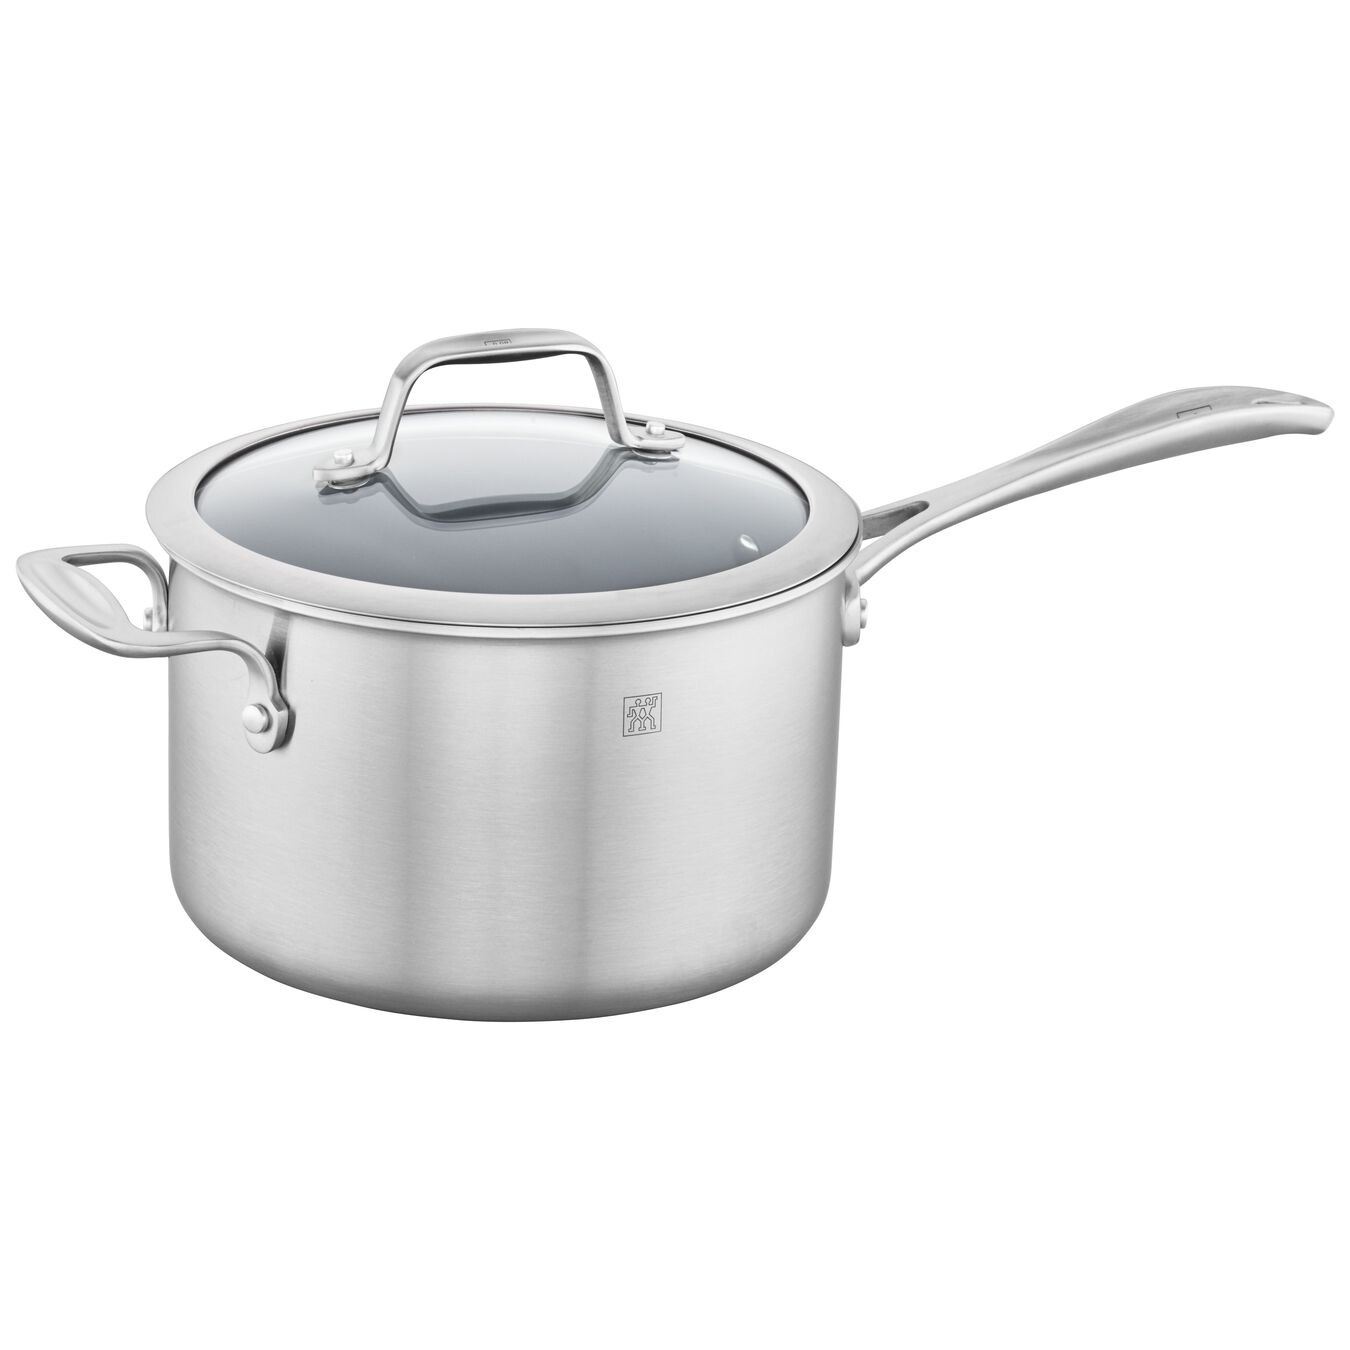 3-ply 4-qt Stainless Steel Ceramic Nonstick Saucepan,,large 2